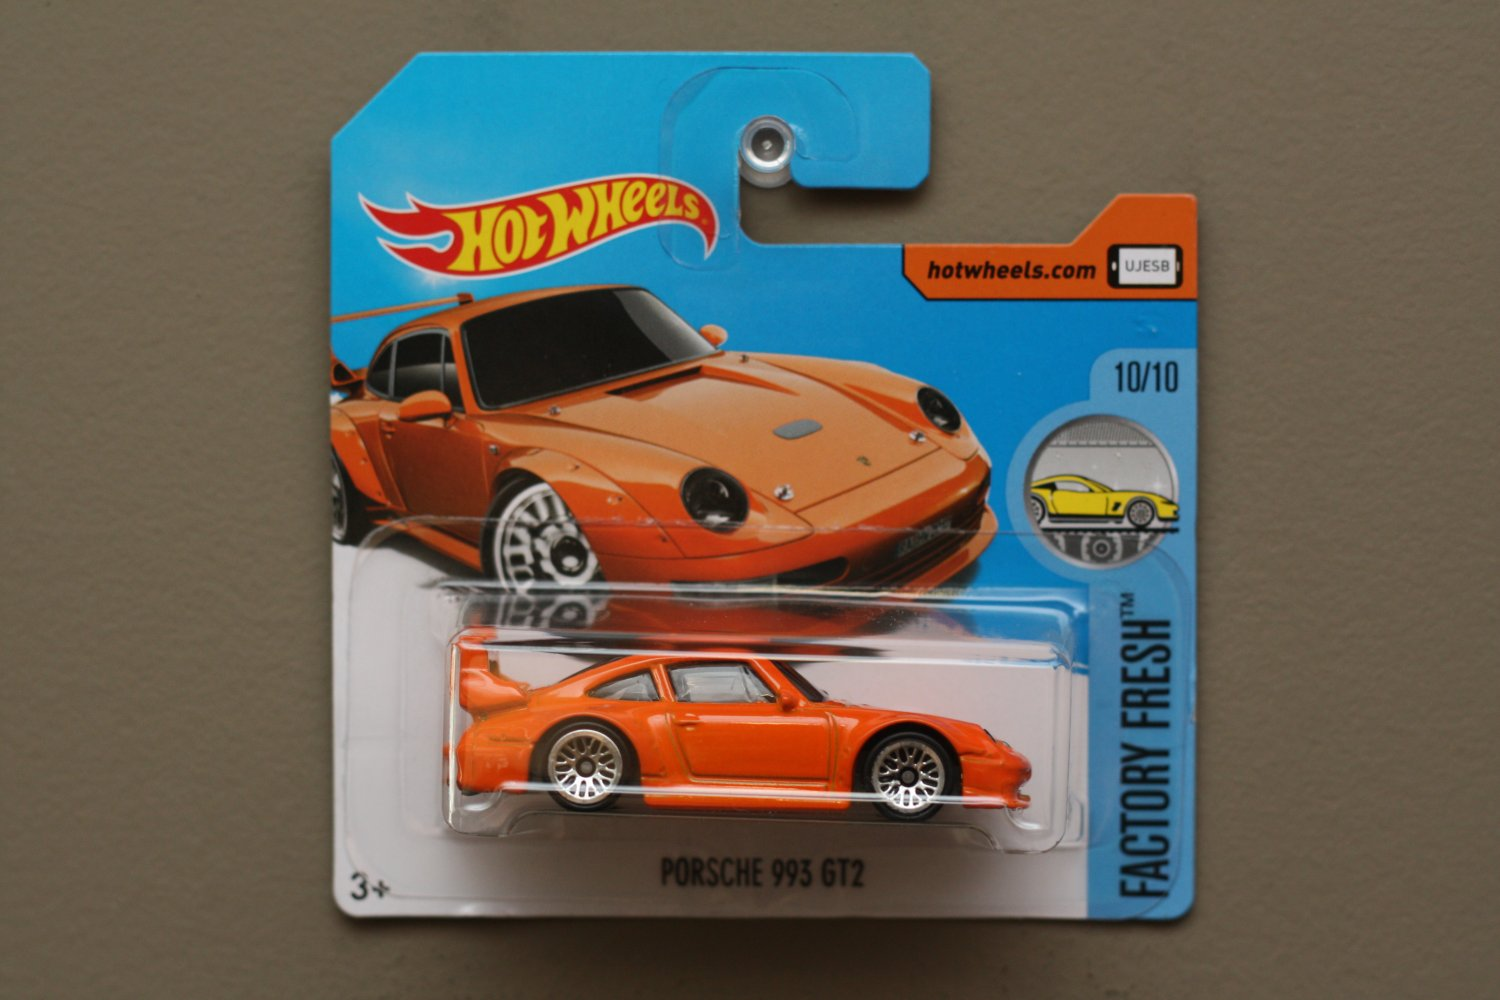 hot wheels 2017 factory fresh porsche 993 gt2 orange. Black Bedroom Furniture Sets. Home Design Ideas